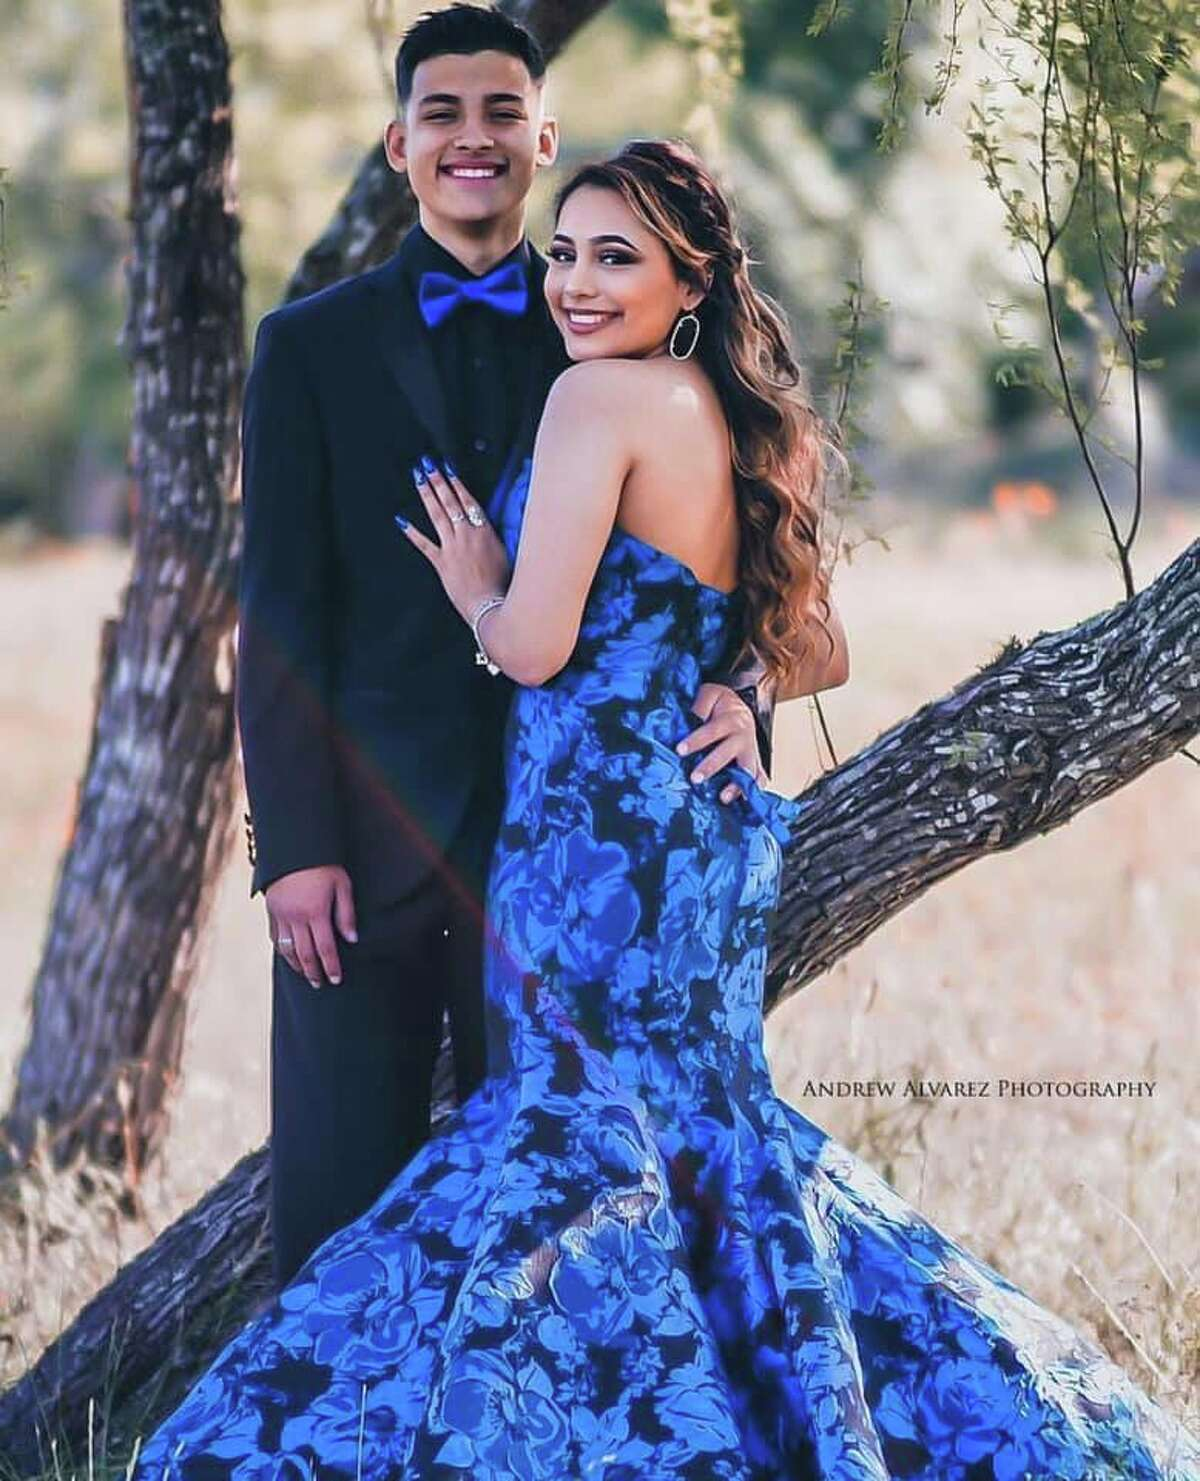 San Antonio photographer Andrew Alvarez is hoping to help dull the pain of losing a special memory like prom by offering free photos. Alvarez said he and his wife, Rachel Alvarez, came up with the idea together as they started seeing schools across San Antonio cancel the big dance.